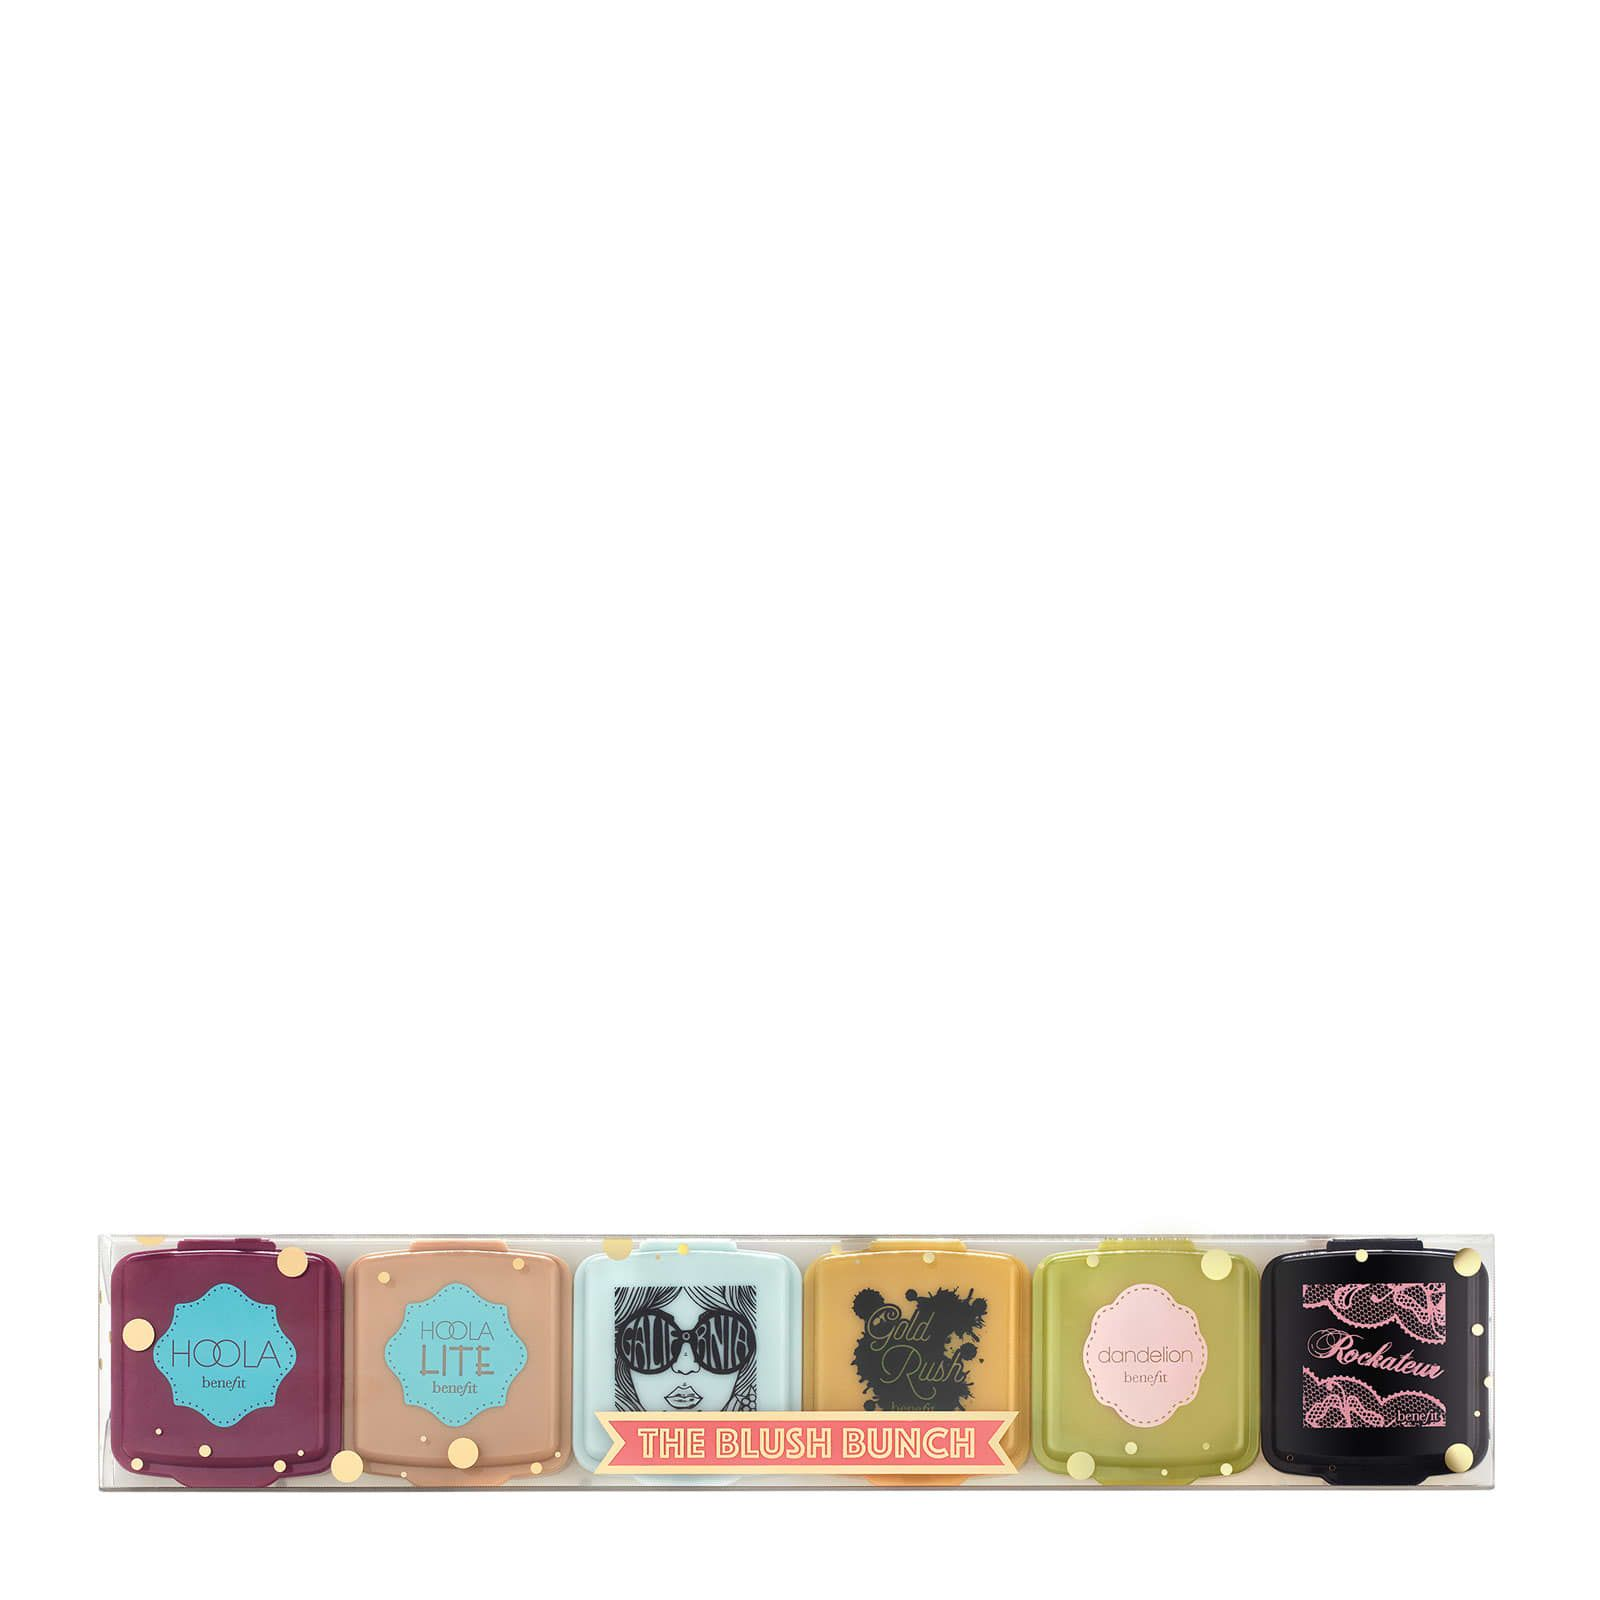 2776c186048 Benefit The Blush Bunch Gift Set£19.50 (could do something similar with  glitter bags